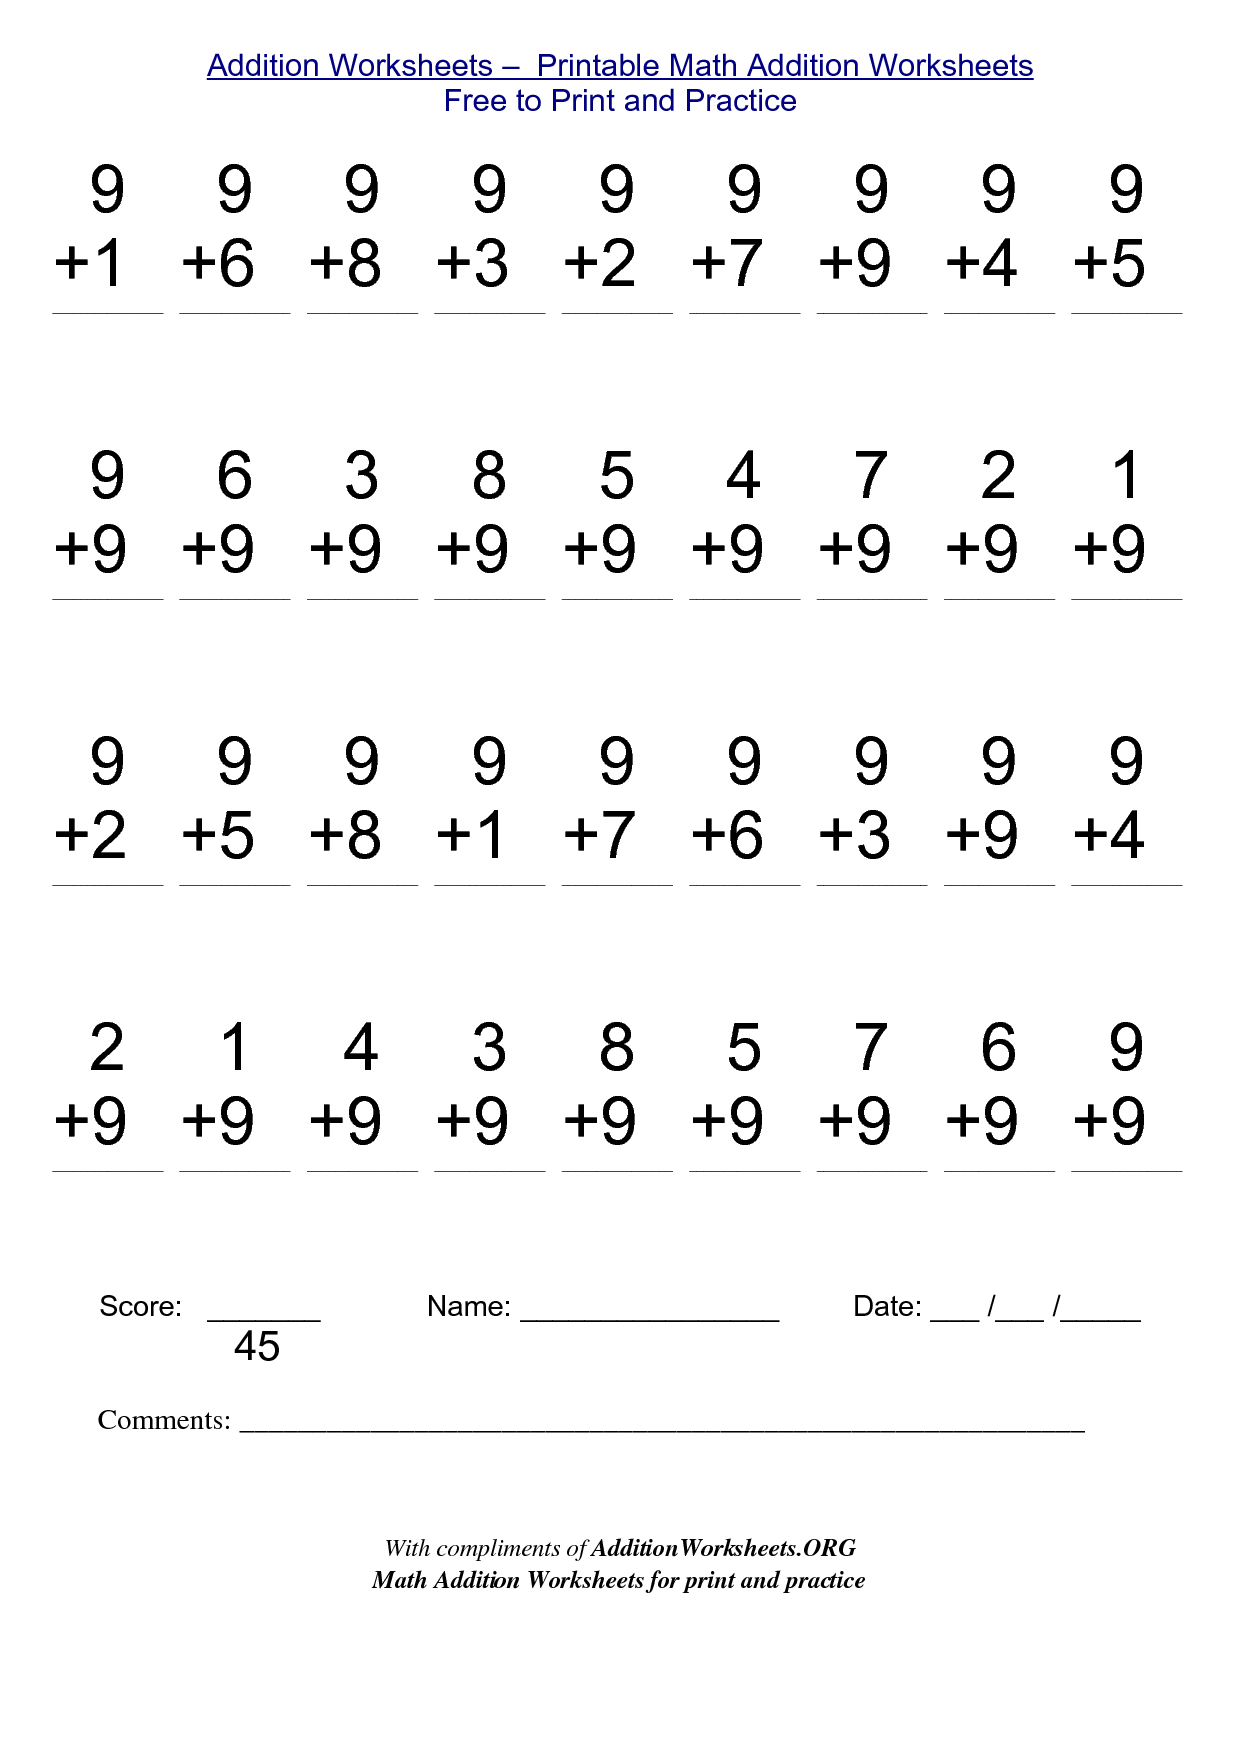 Uncategorized Printable 4th Grade Math Worksheets math worksheets for free to print alot com me pinterest addition printable print